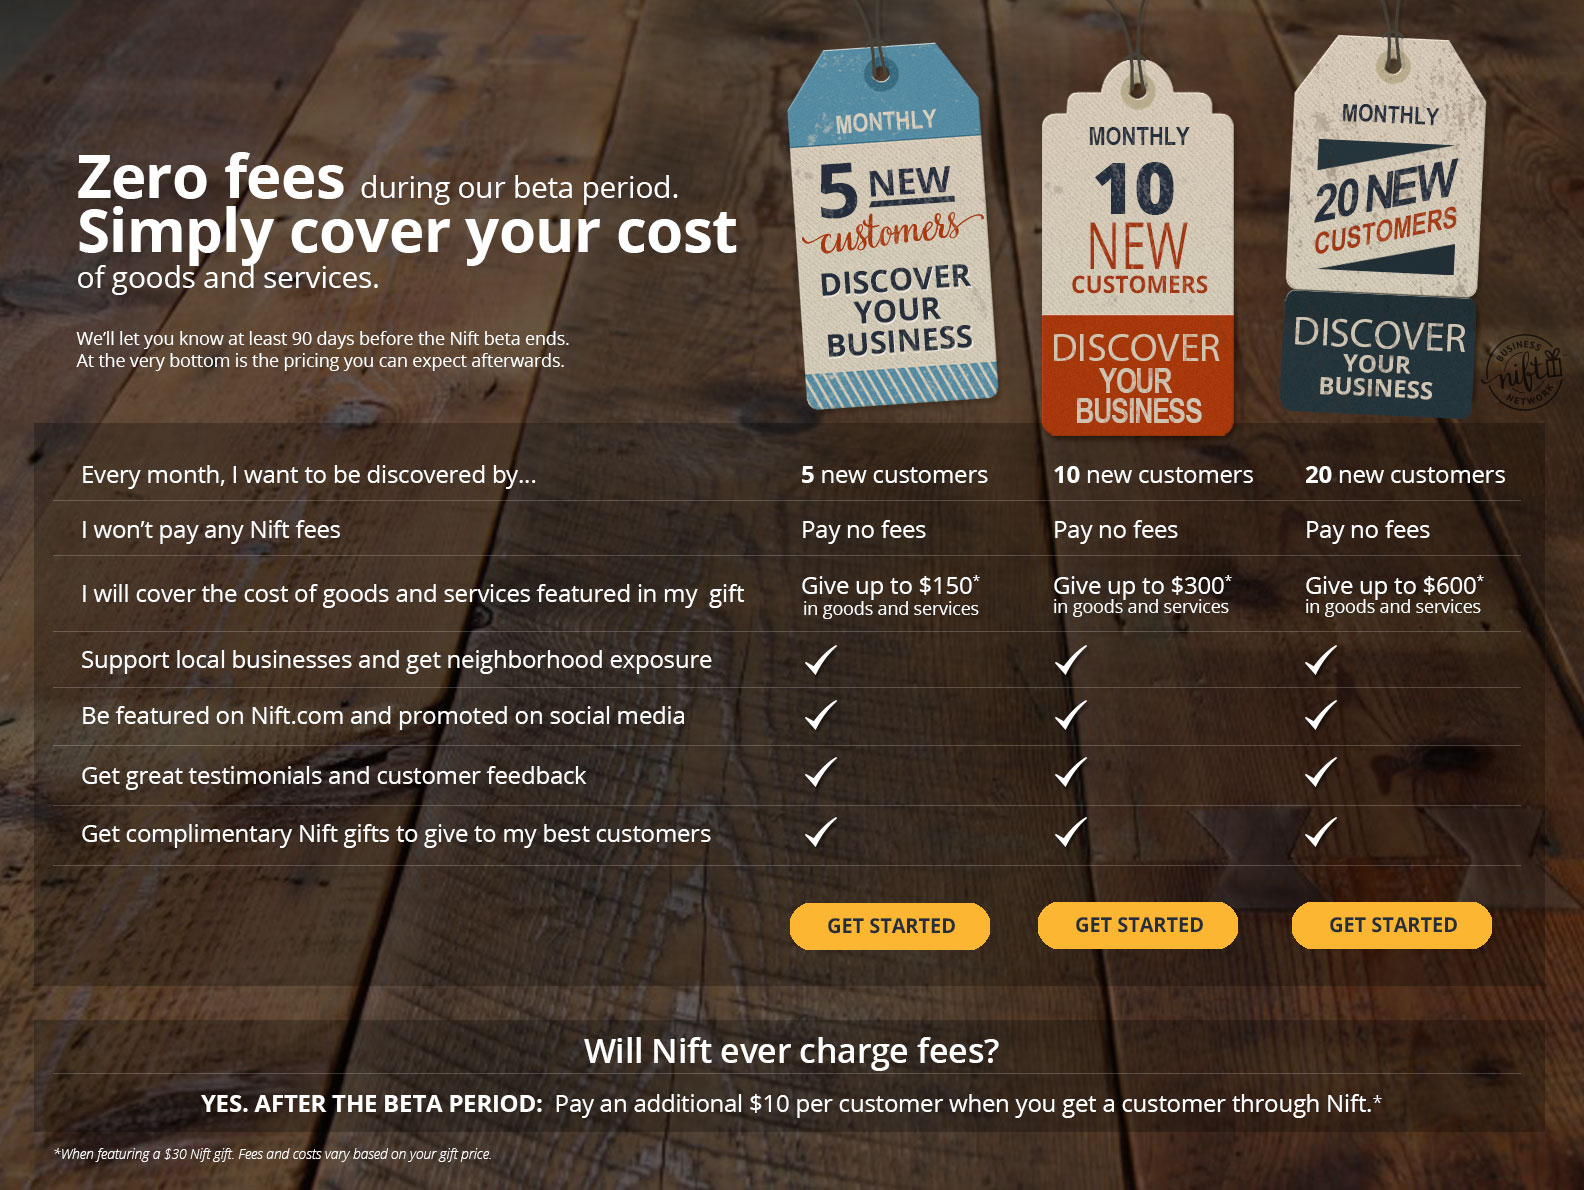 zero fees during our private beta. Simply cover your cost of goods and services.